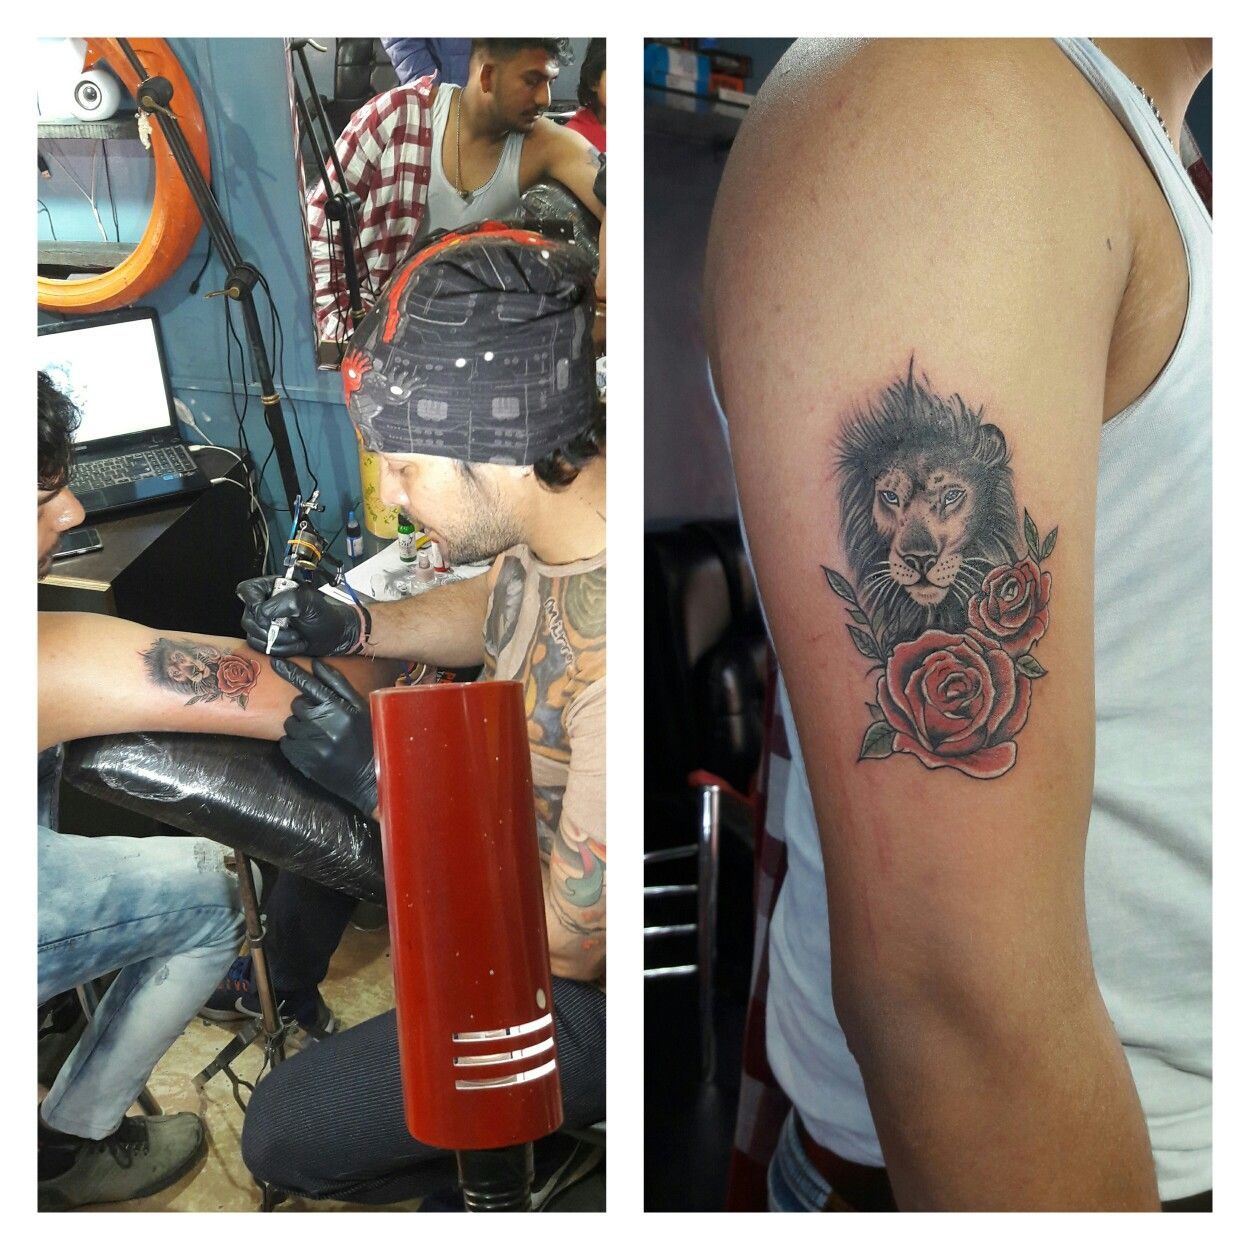 eee7ef63c lion an red rose tattoo...!!!!! smoll size tattoos...!!!! hope you like  all.... contact for tattooing 7800000074 pardeep kumar!